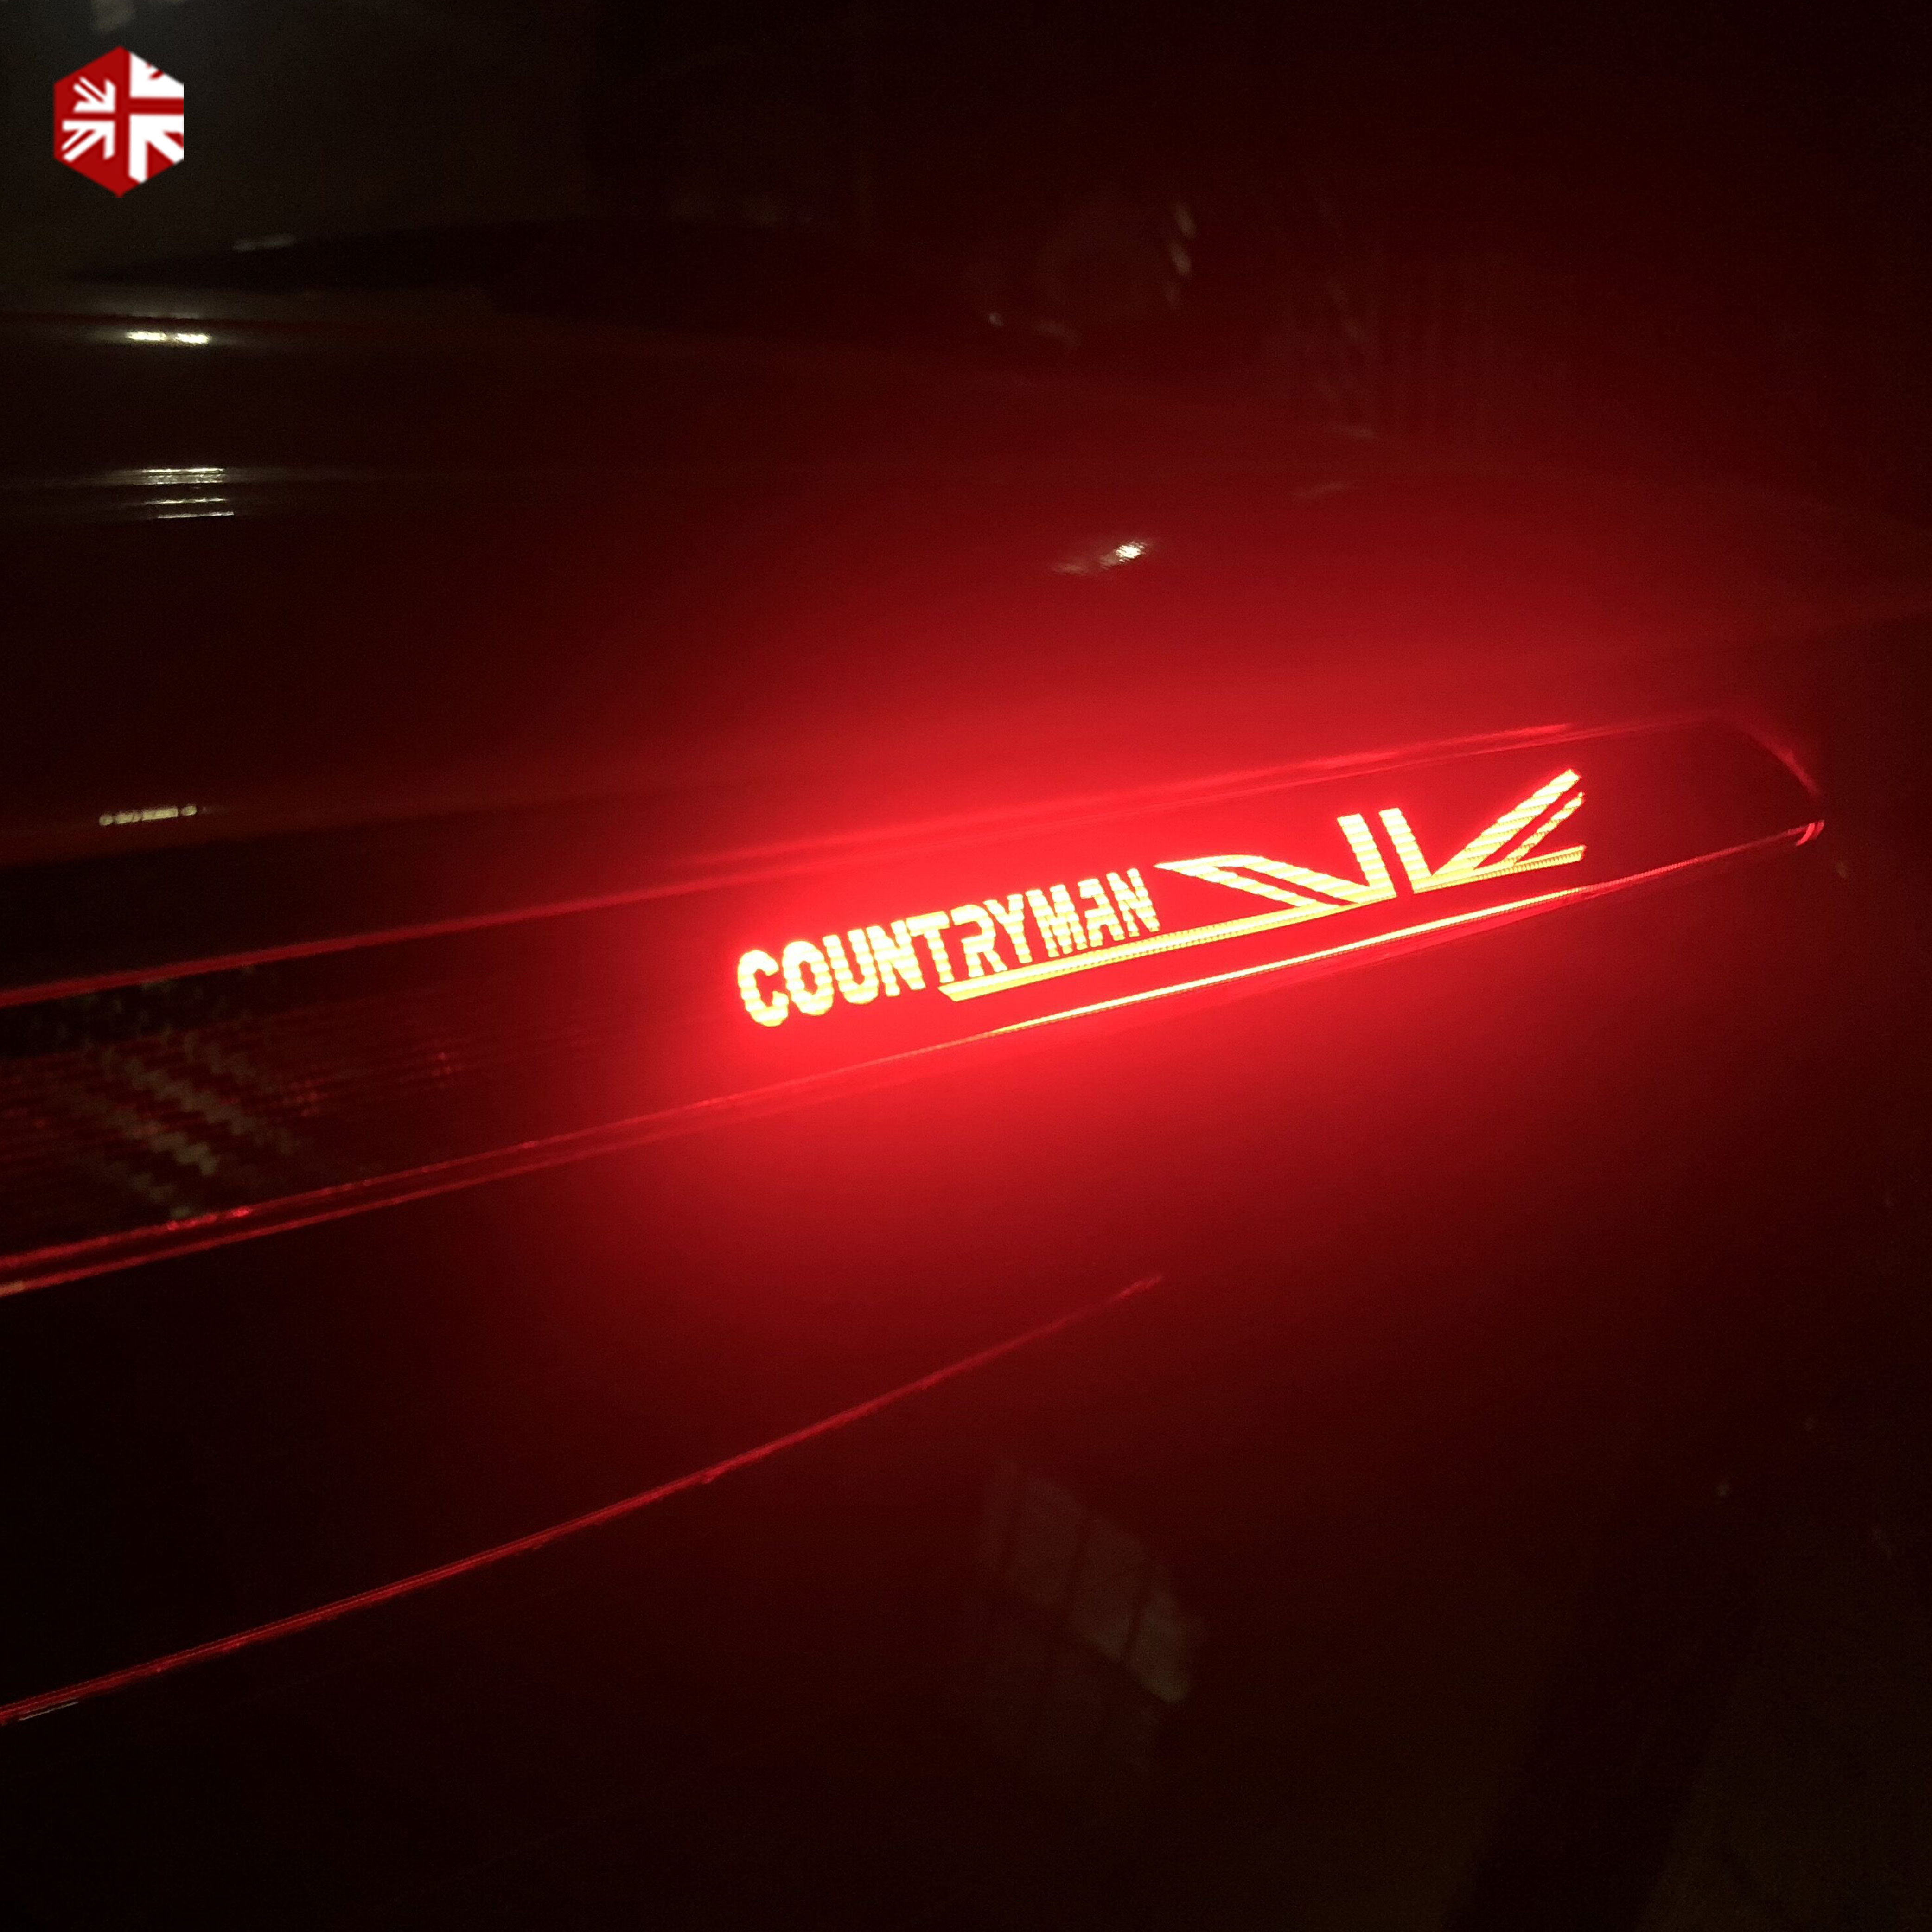 5D Carbon Fiber Vinyl High Mounted Stop Brake Lamp Light Stickers Decals For Mini Cooper R55 R56 R60 F54 F56 F60 Accessories